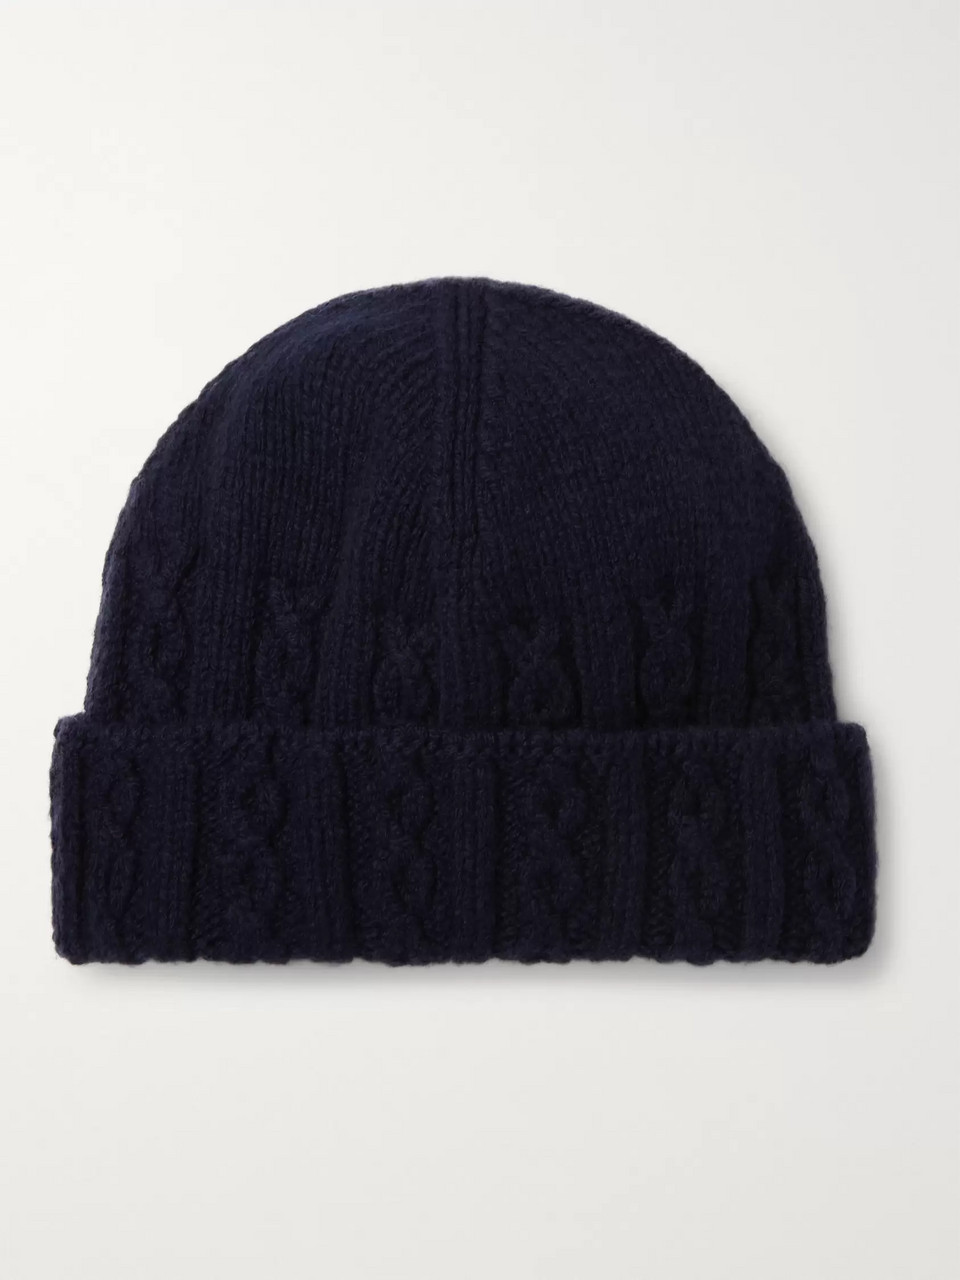 Inis Meáin Cable-Knit Merino Wool Beanie